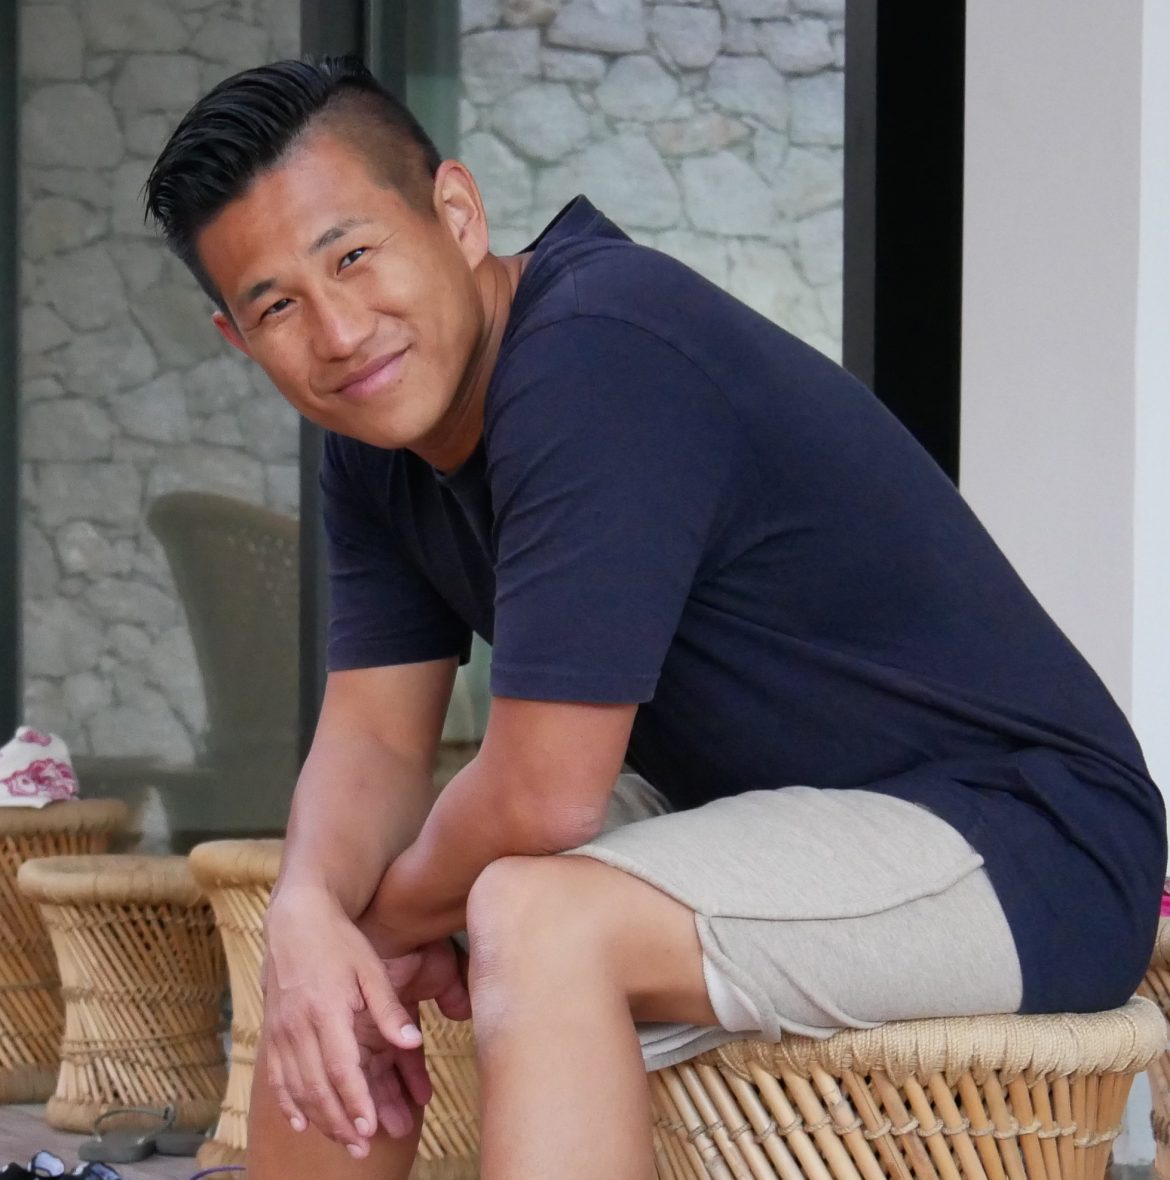 Yoga-Workshop mit Jang-Ho Kim – 23. Februar 2019